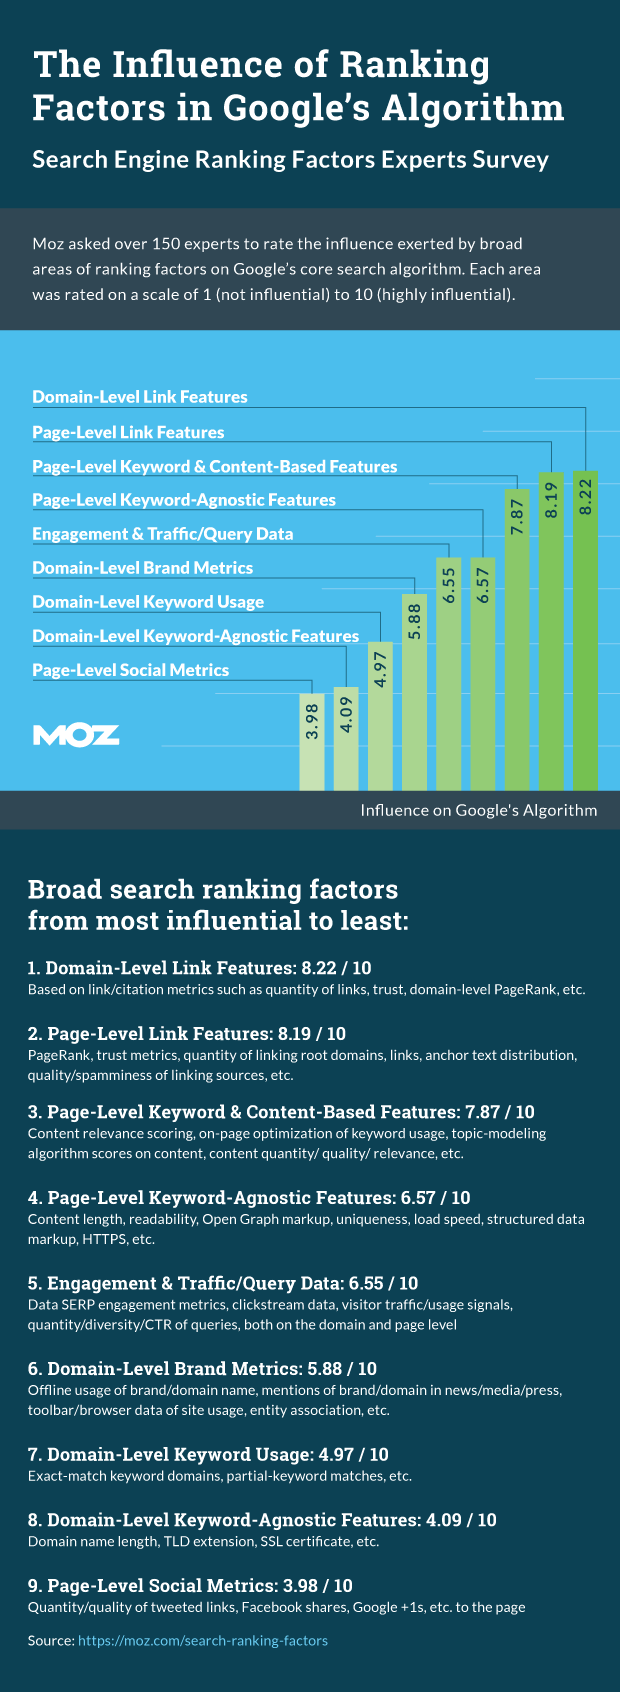 Search Engine Ranking Factors by Moz